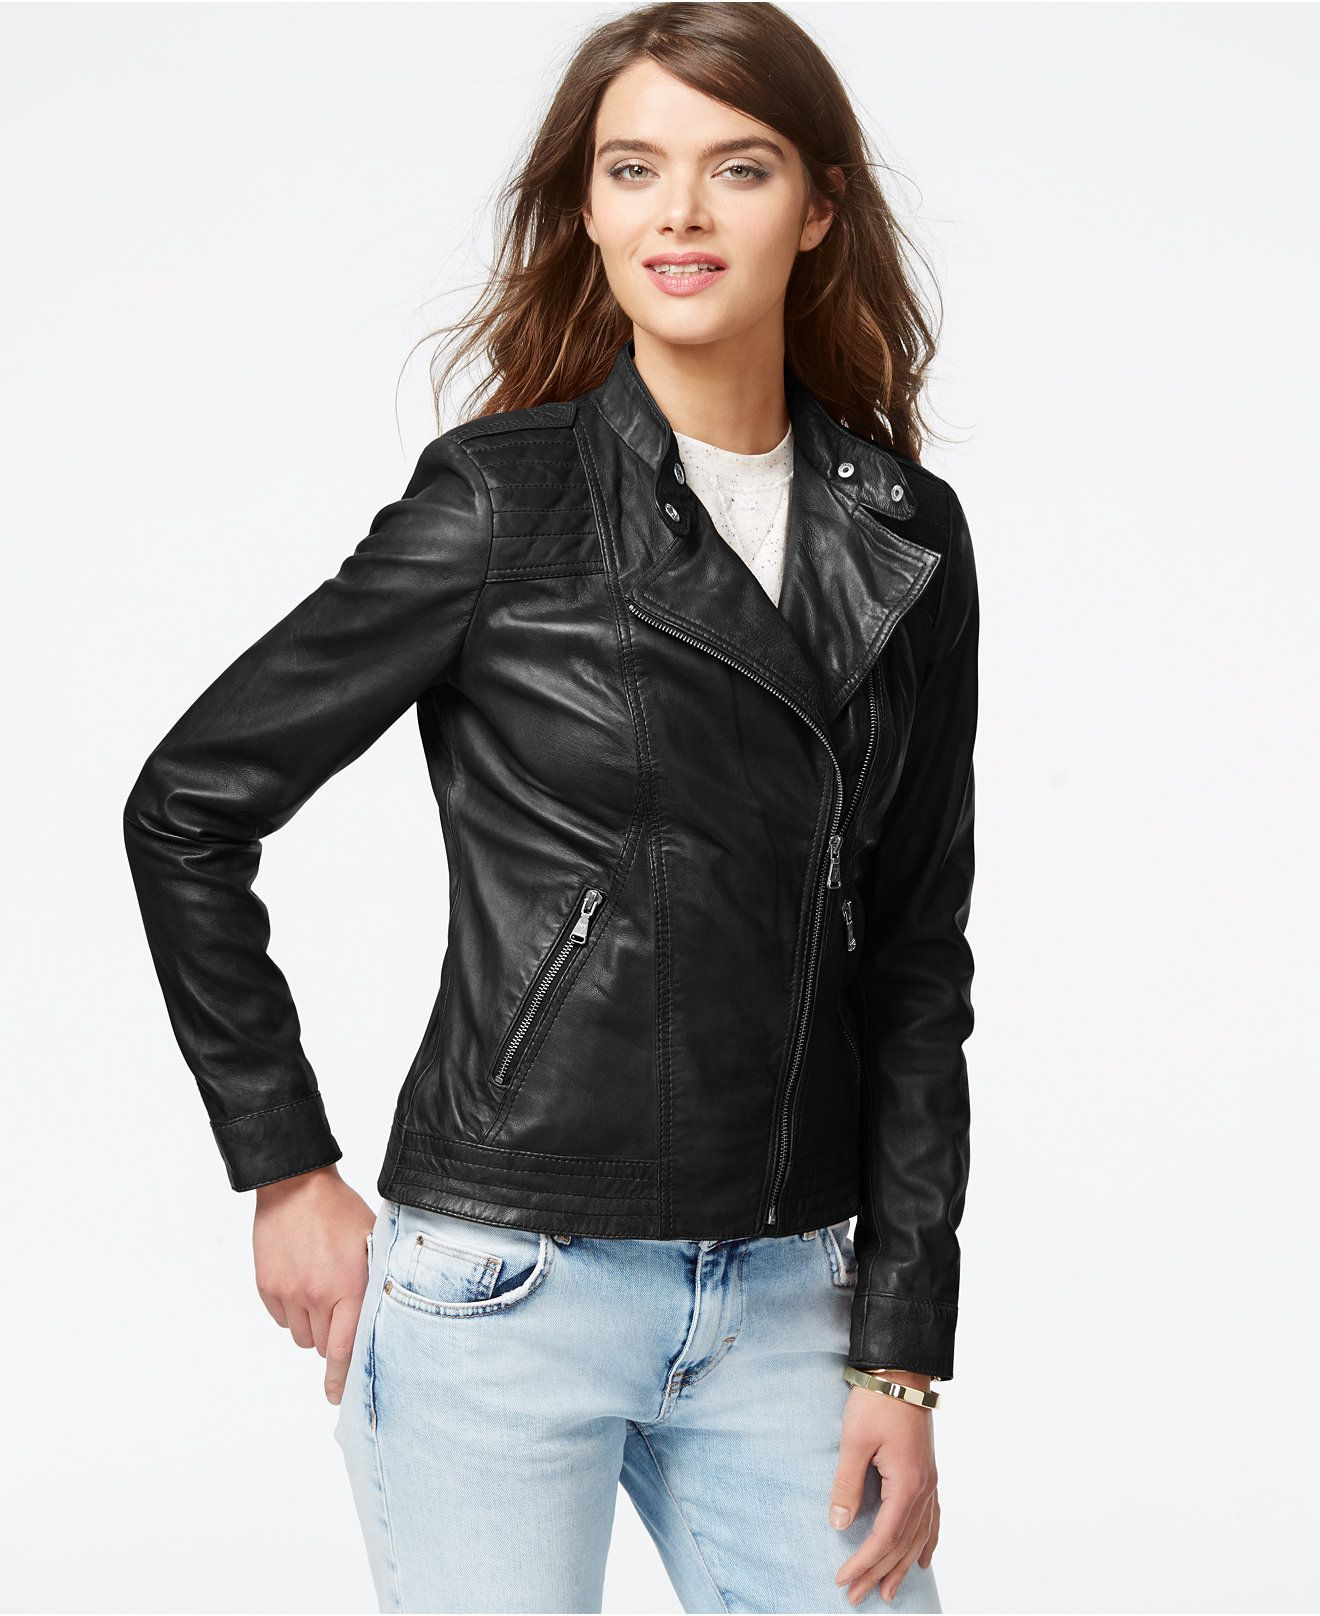 ee180f29fdbe $260 with sale GUESS Asymmetrical Zip-Front Leather Jacket - Jackets &  Blazers - Women - Macy's